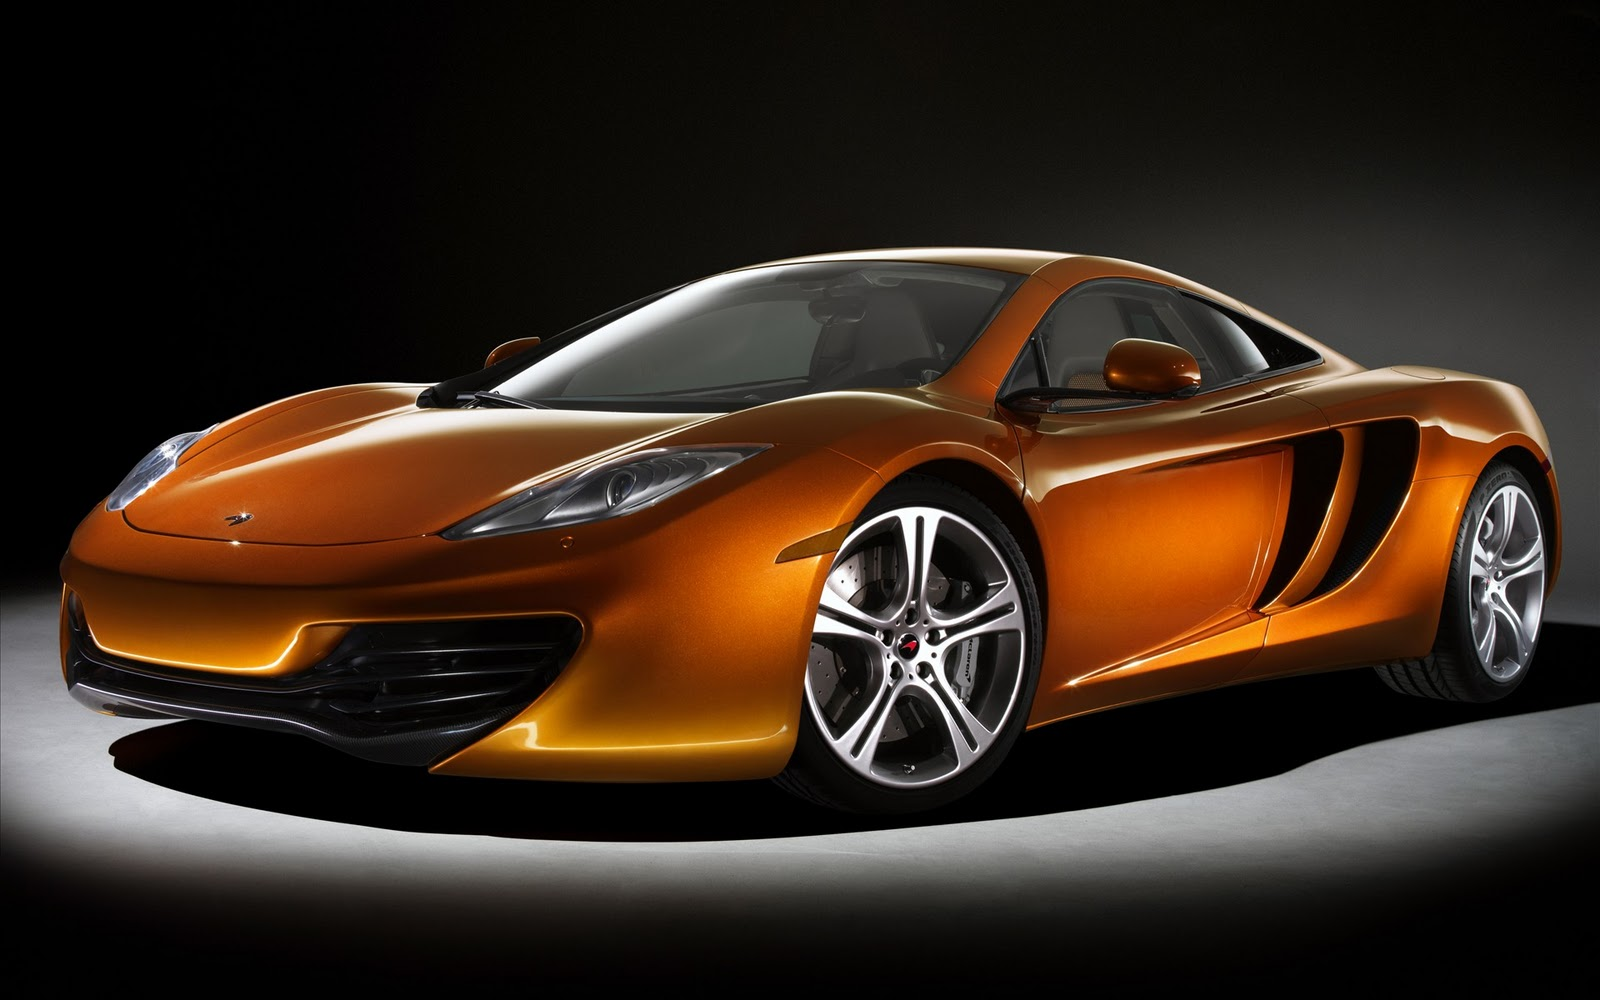 New Car Photo Cool cars wallpapers 2011 1600x1000